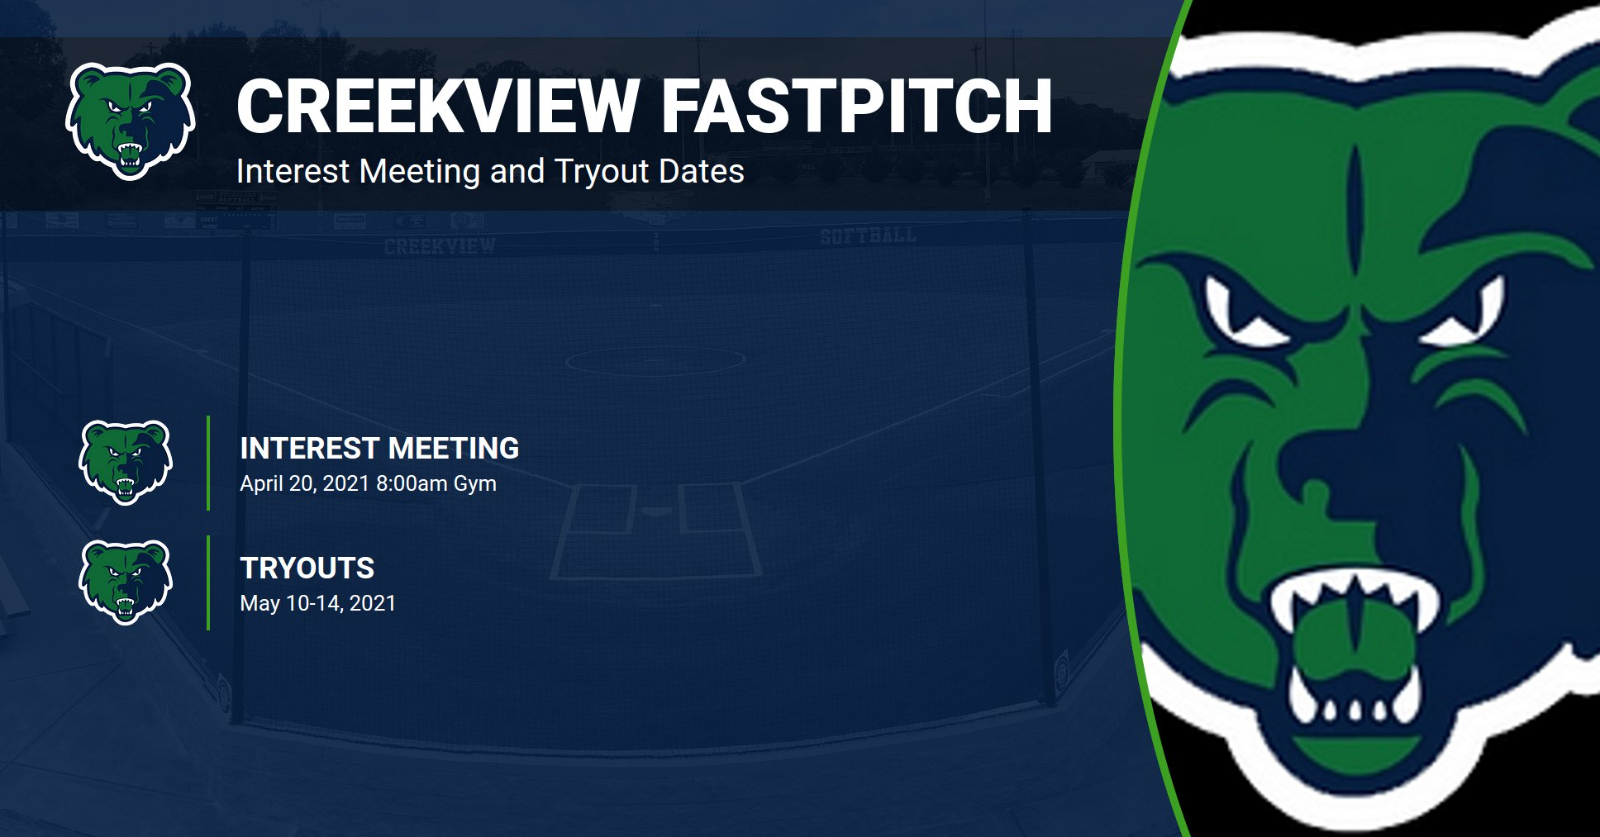 Creekview Fastpitch Softball – 21-22 School Year Interest Meeting and Tryout Dates